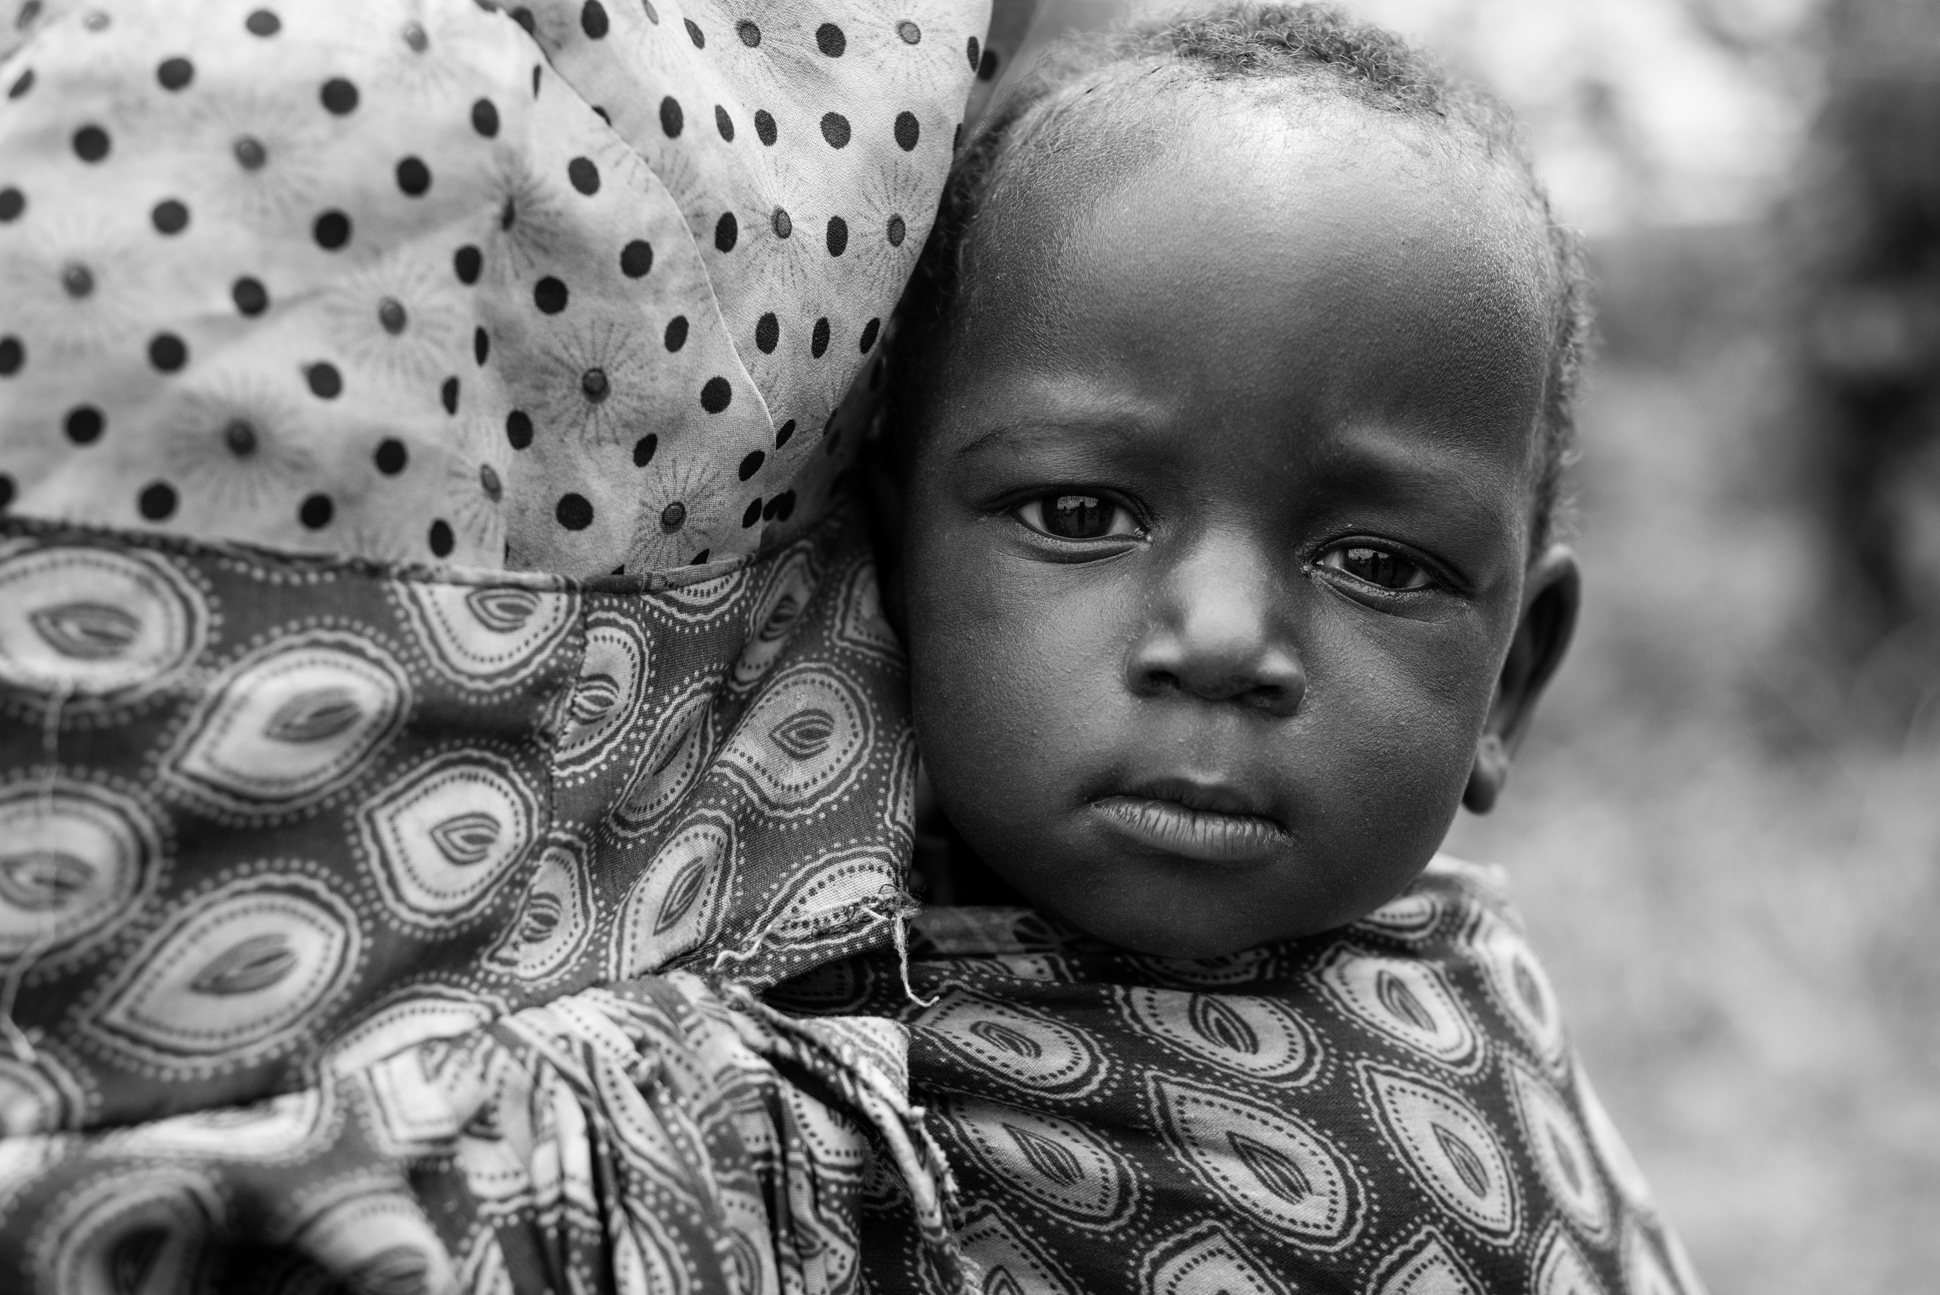 Portrait of an African baby in black and white. On the back of his mother. Made by Ellis Photography.